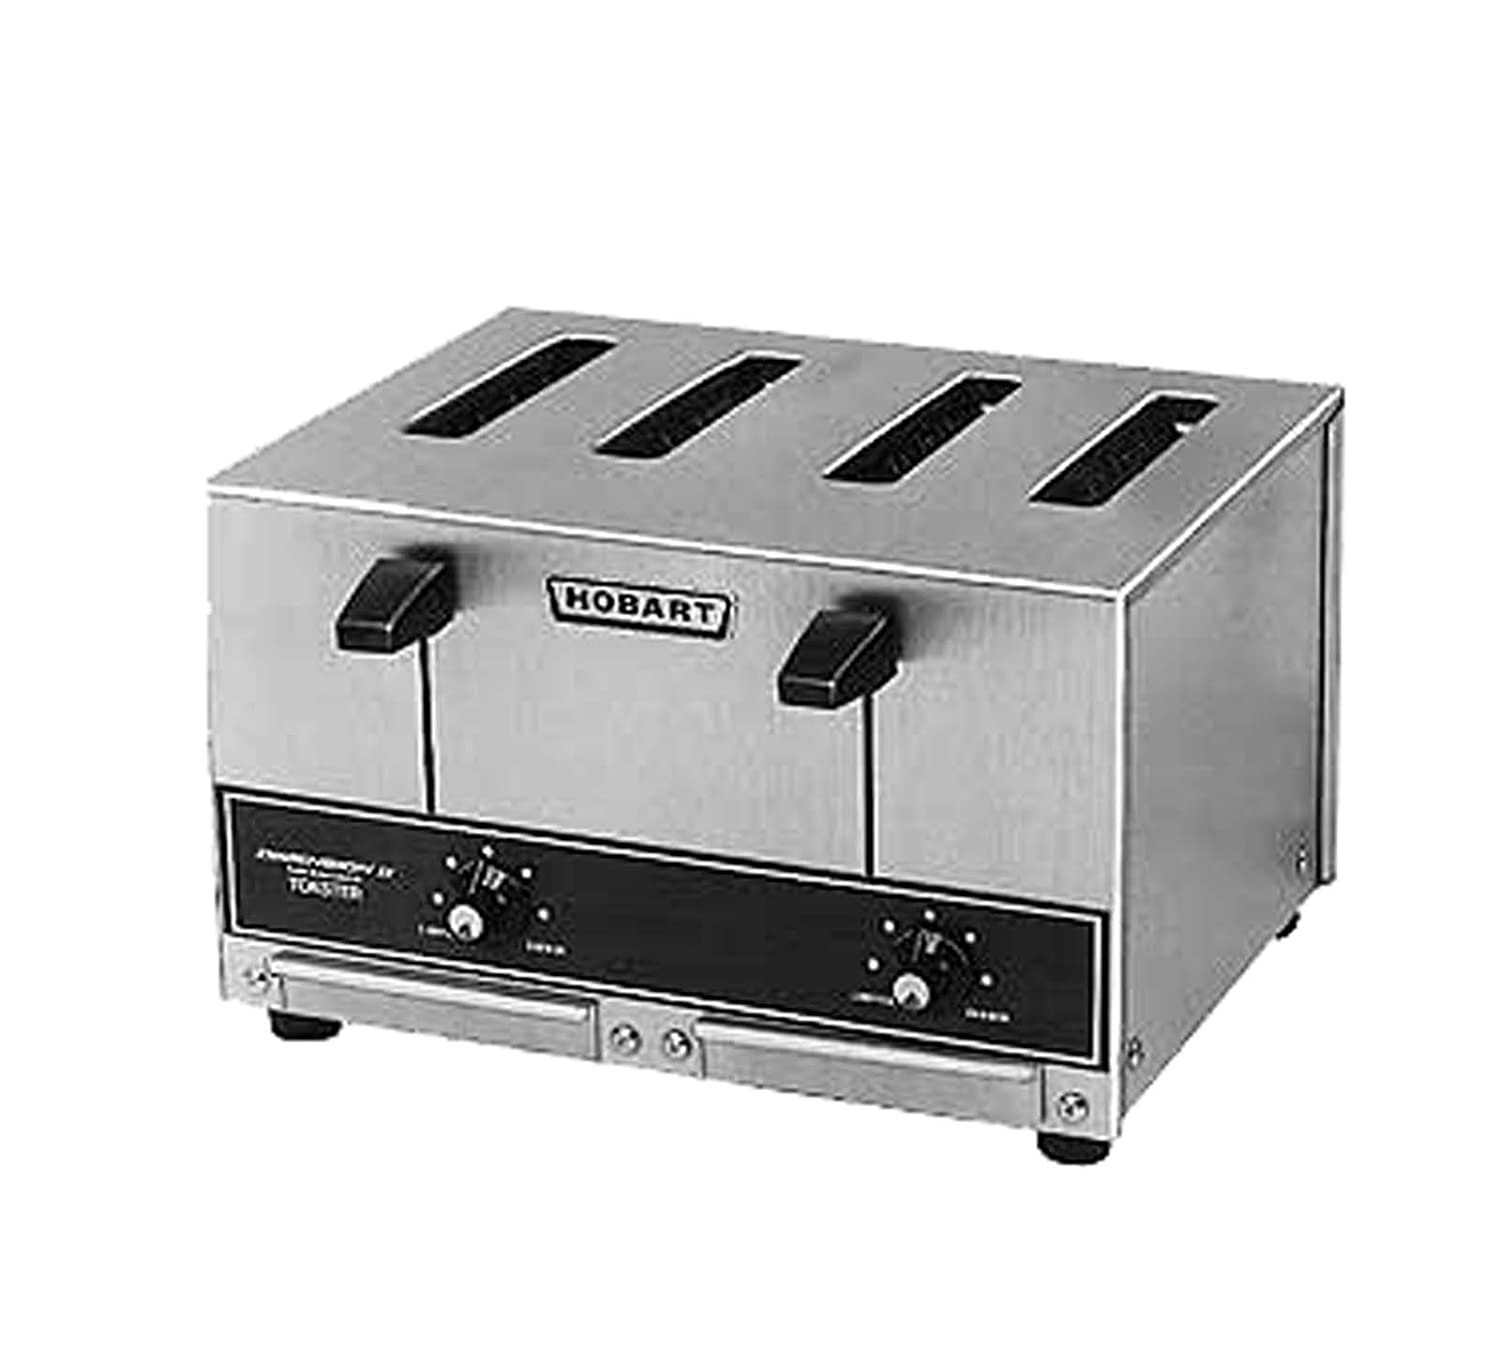 com b ovens best sellers home toaster kitchen amazon industrial toasters